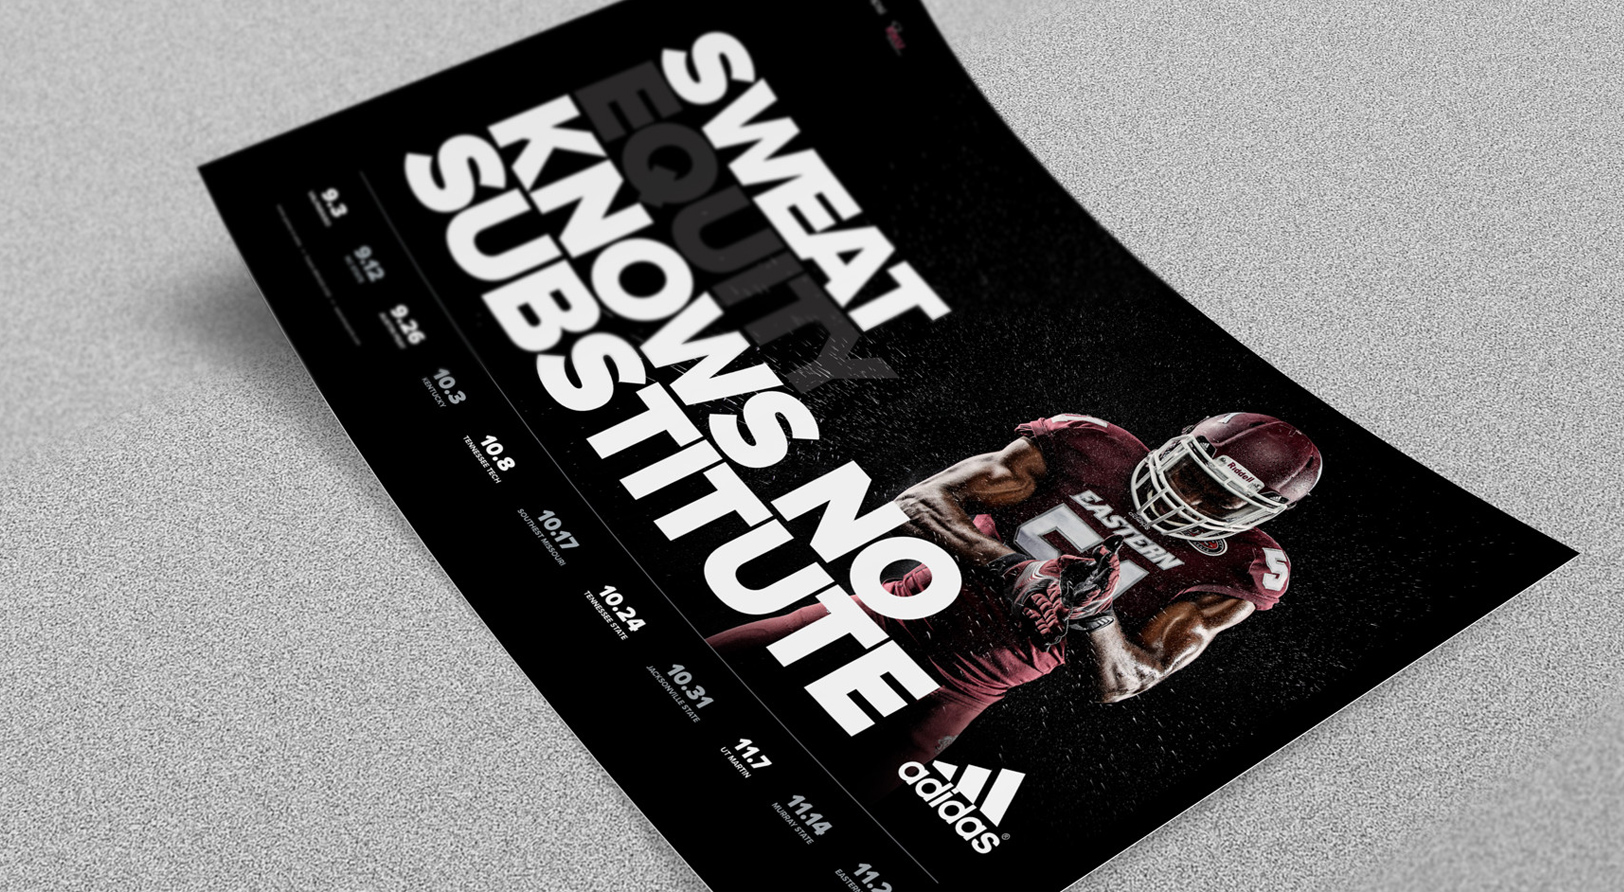 EKU Football sports poster design concept for the 2014 Sports Marketing campaign